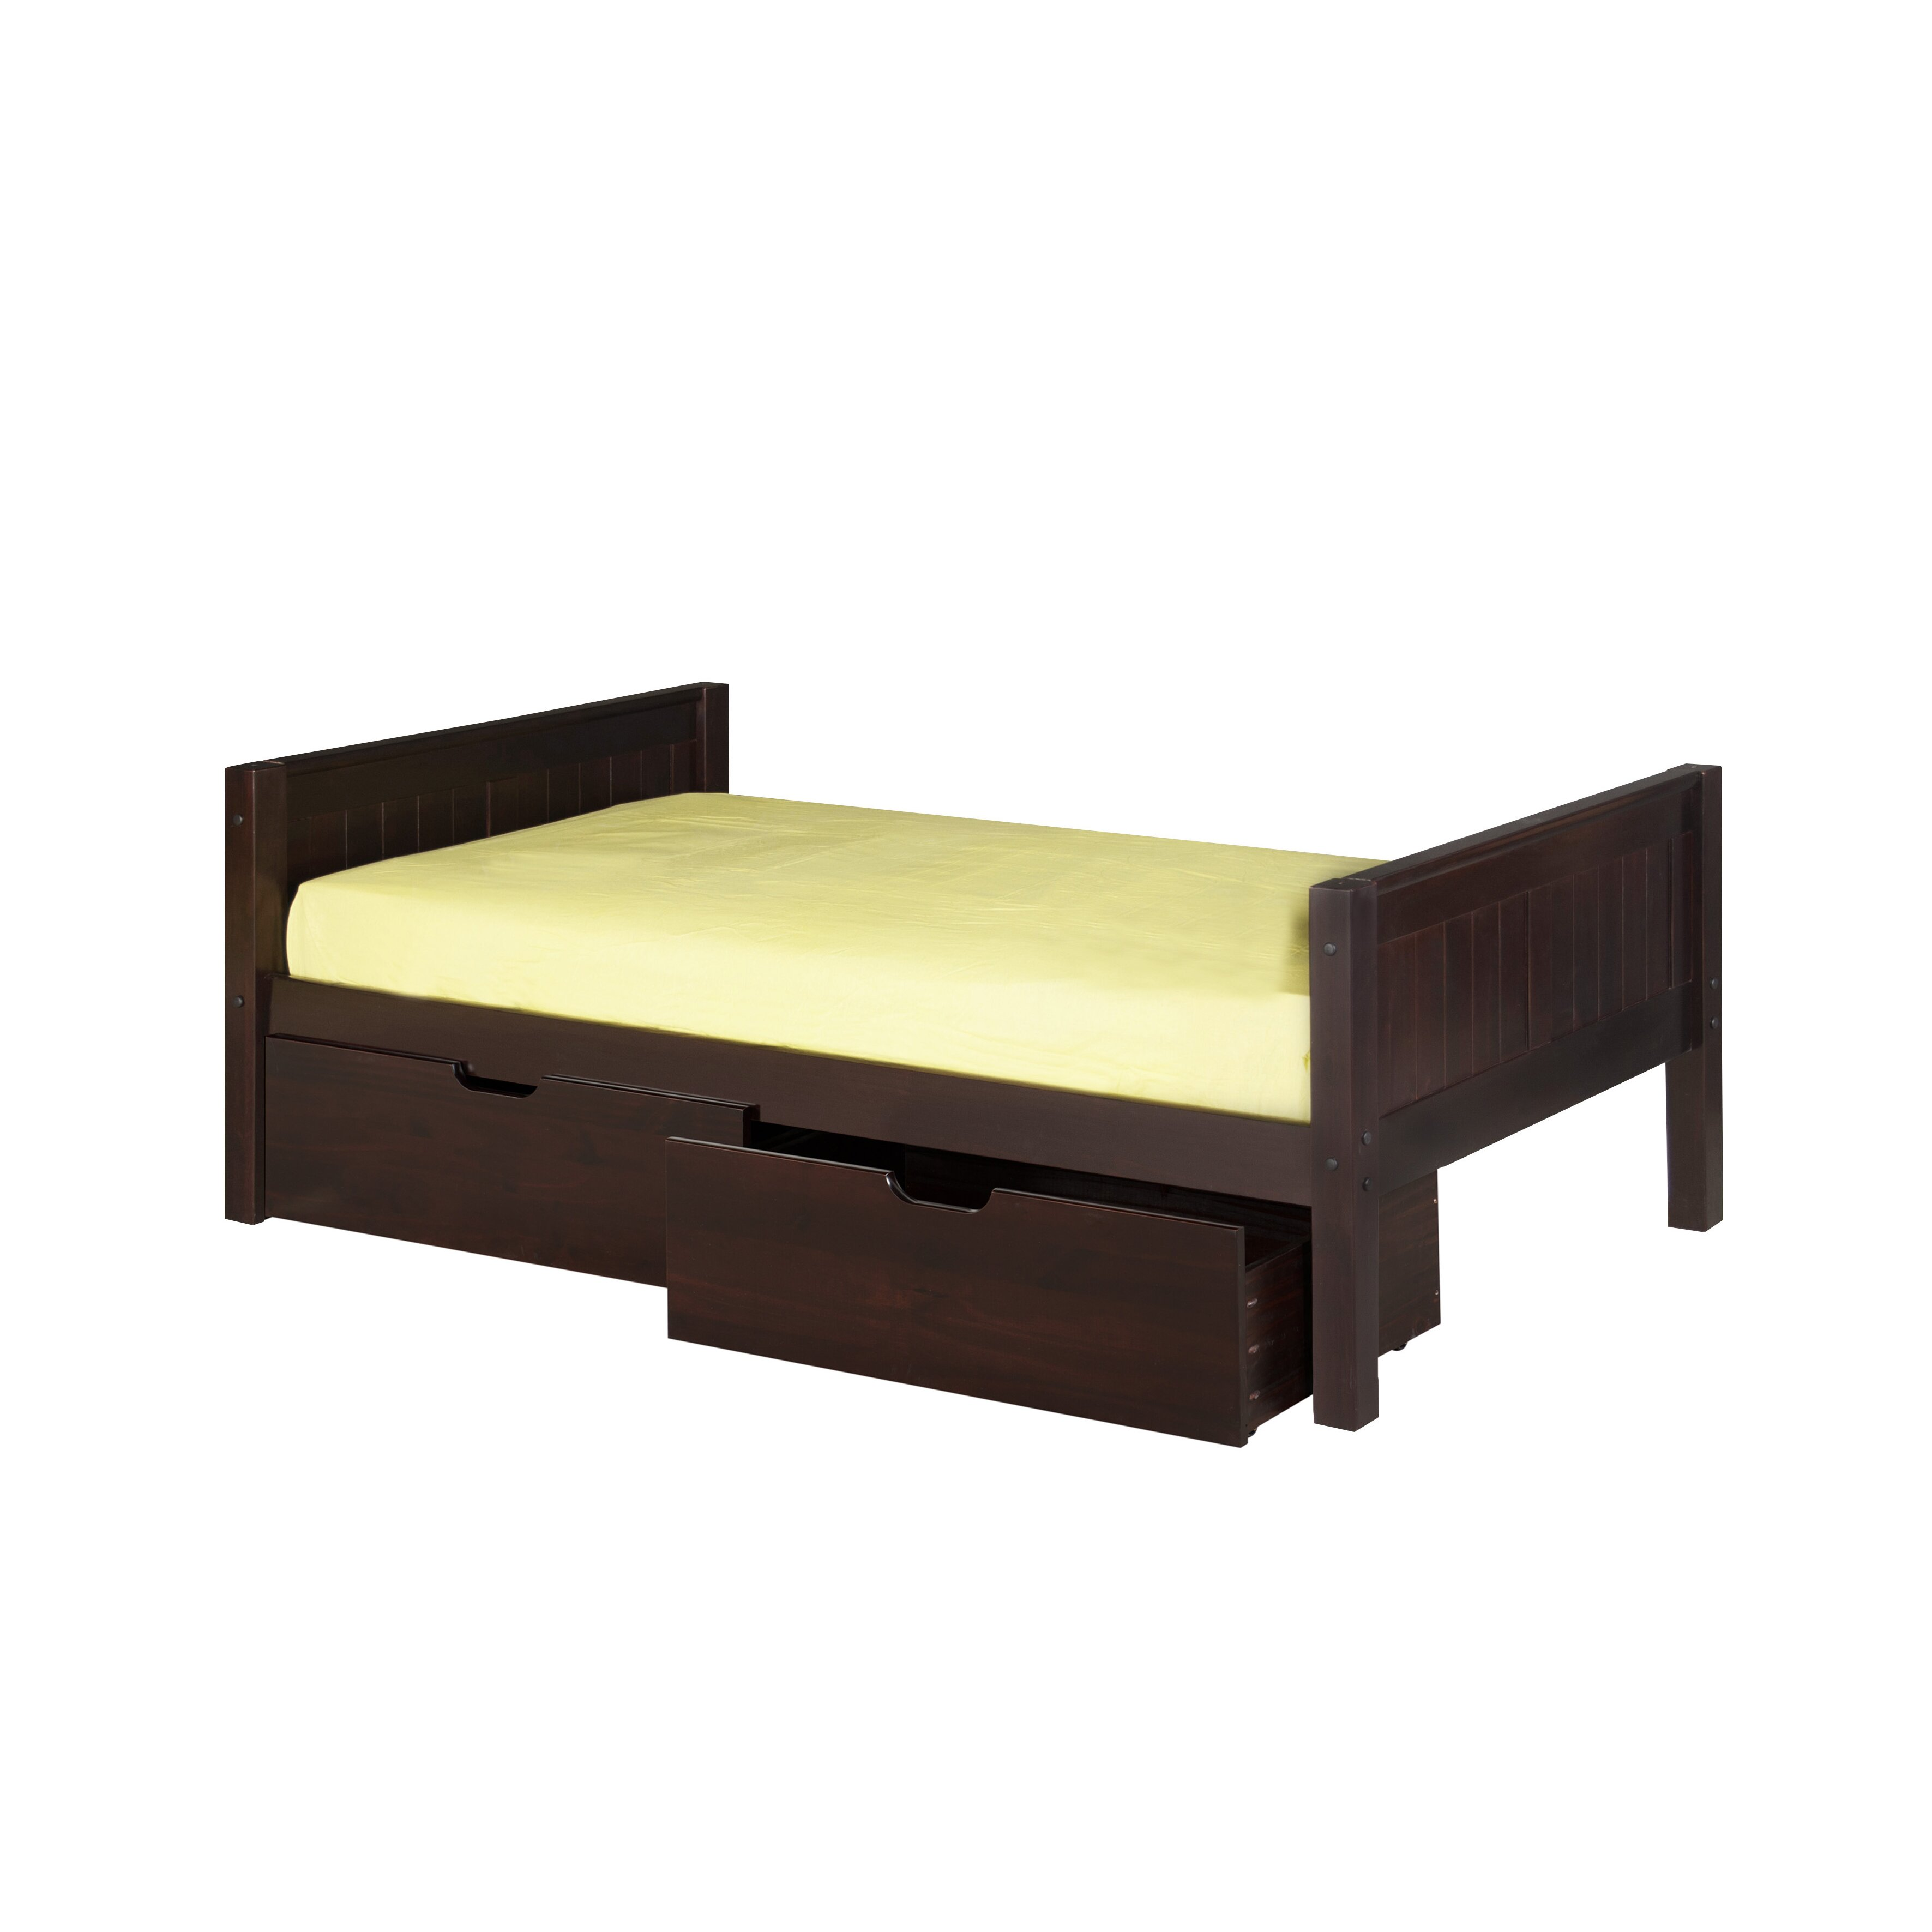 Camaflexi twin panel bed with drawers reviews wayfair for Twin bed with drawers